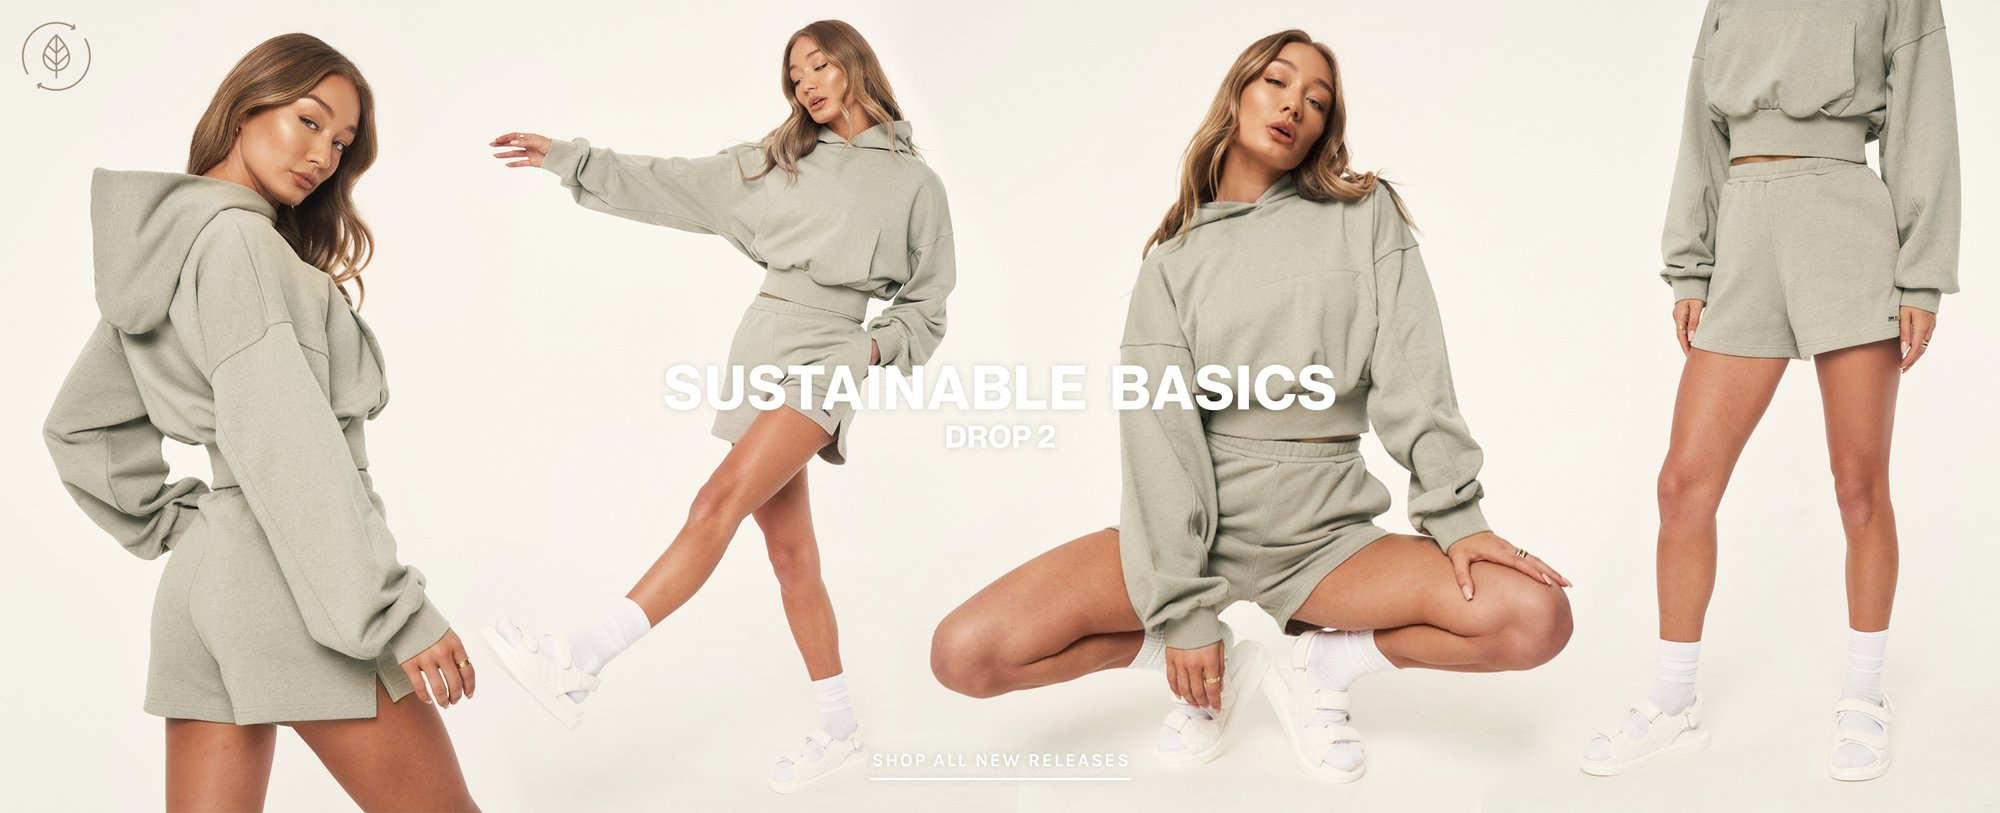 The couture club - sustainable